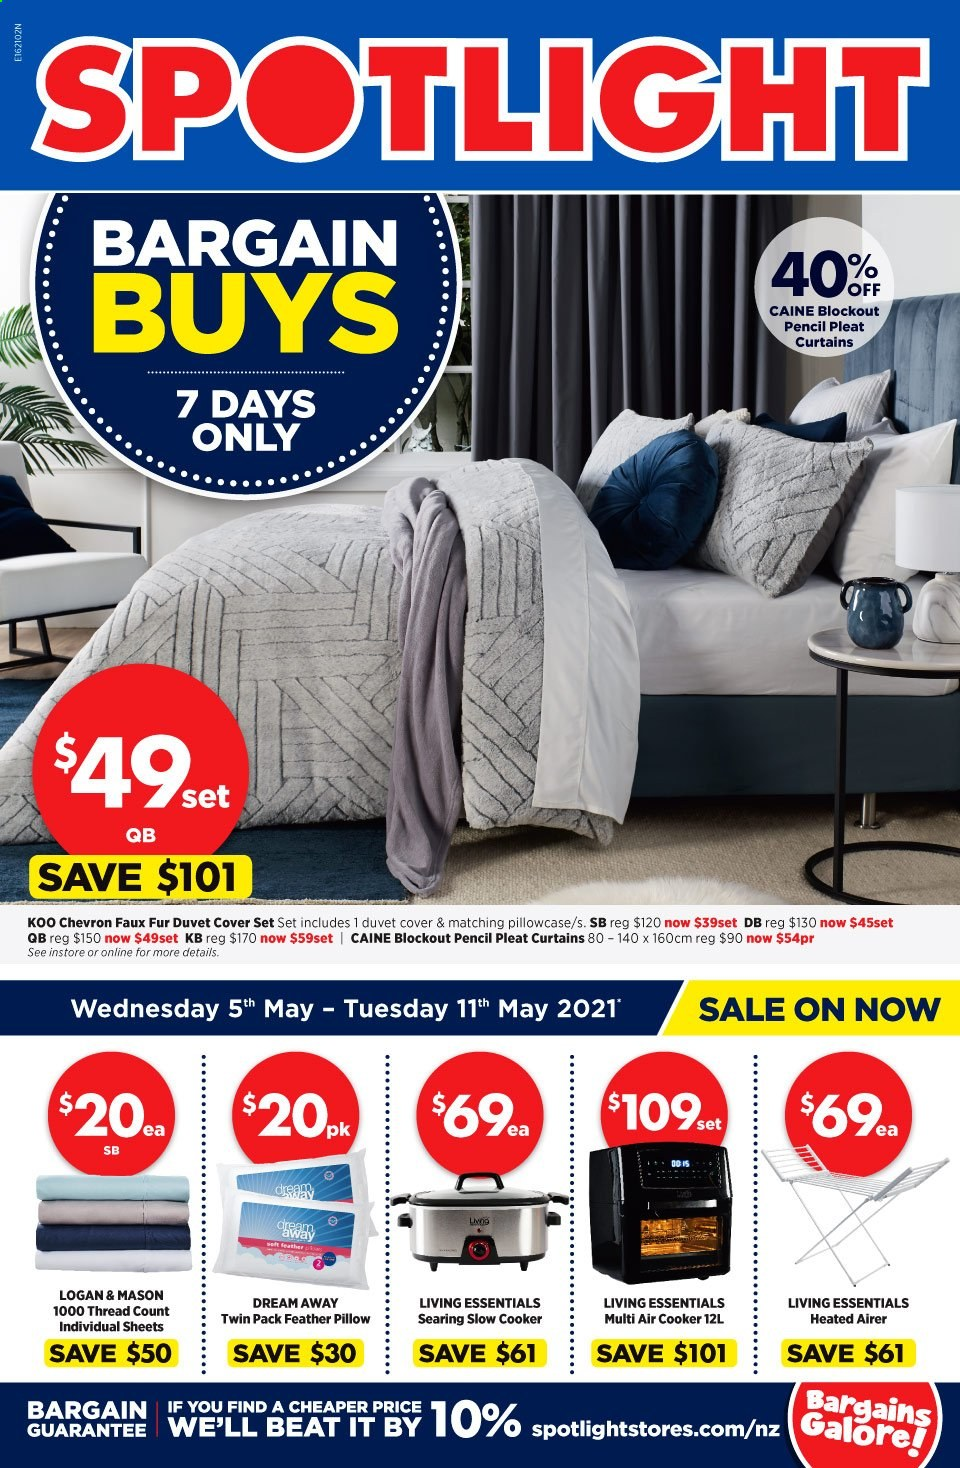 Spotlight mailer - 05.05.2021 - 11.05.2021 - Sales products - airer, pencil, duvet, sheet, pillow, pillowcases, curtains, quilt cover set, essentials. Page 1.